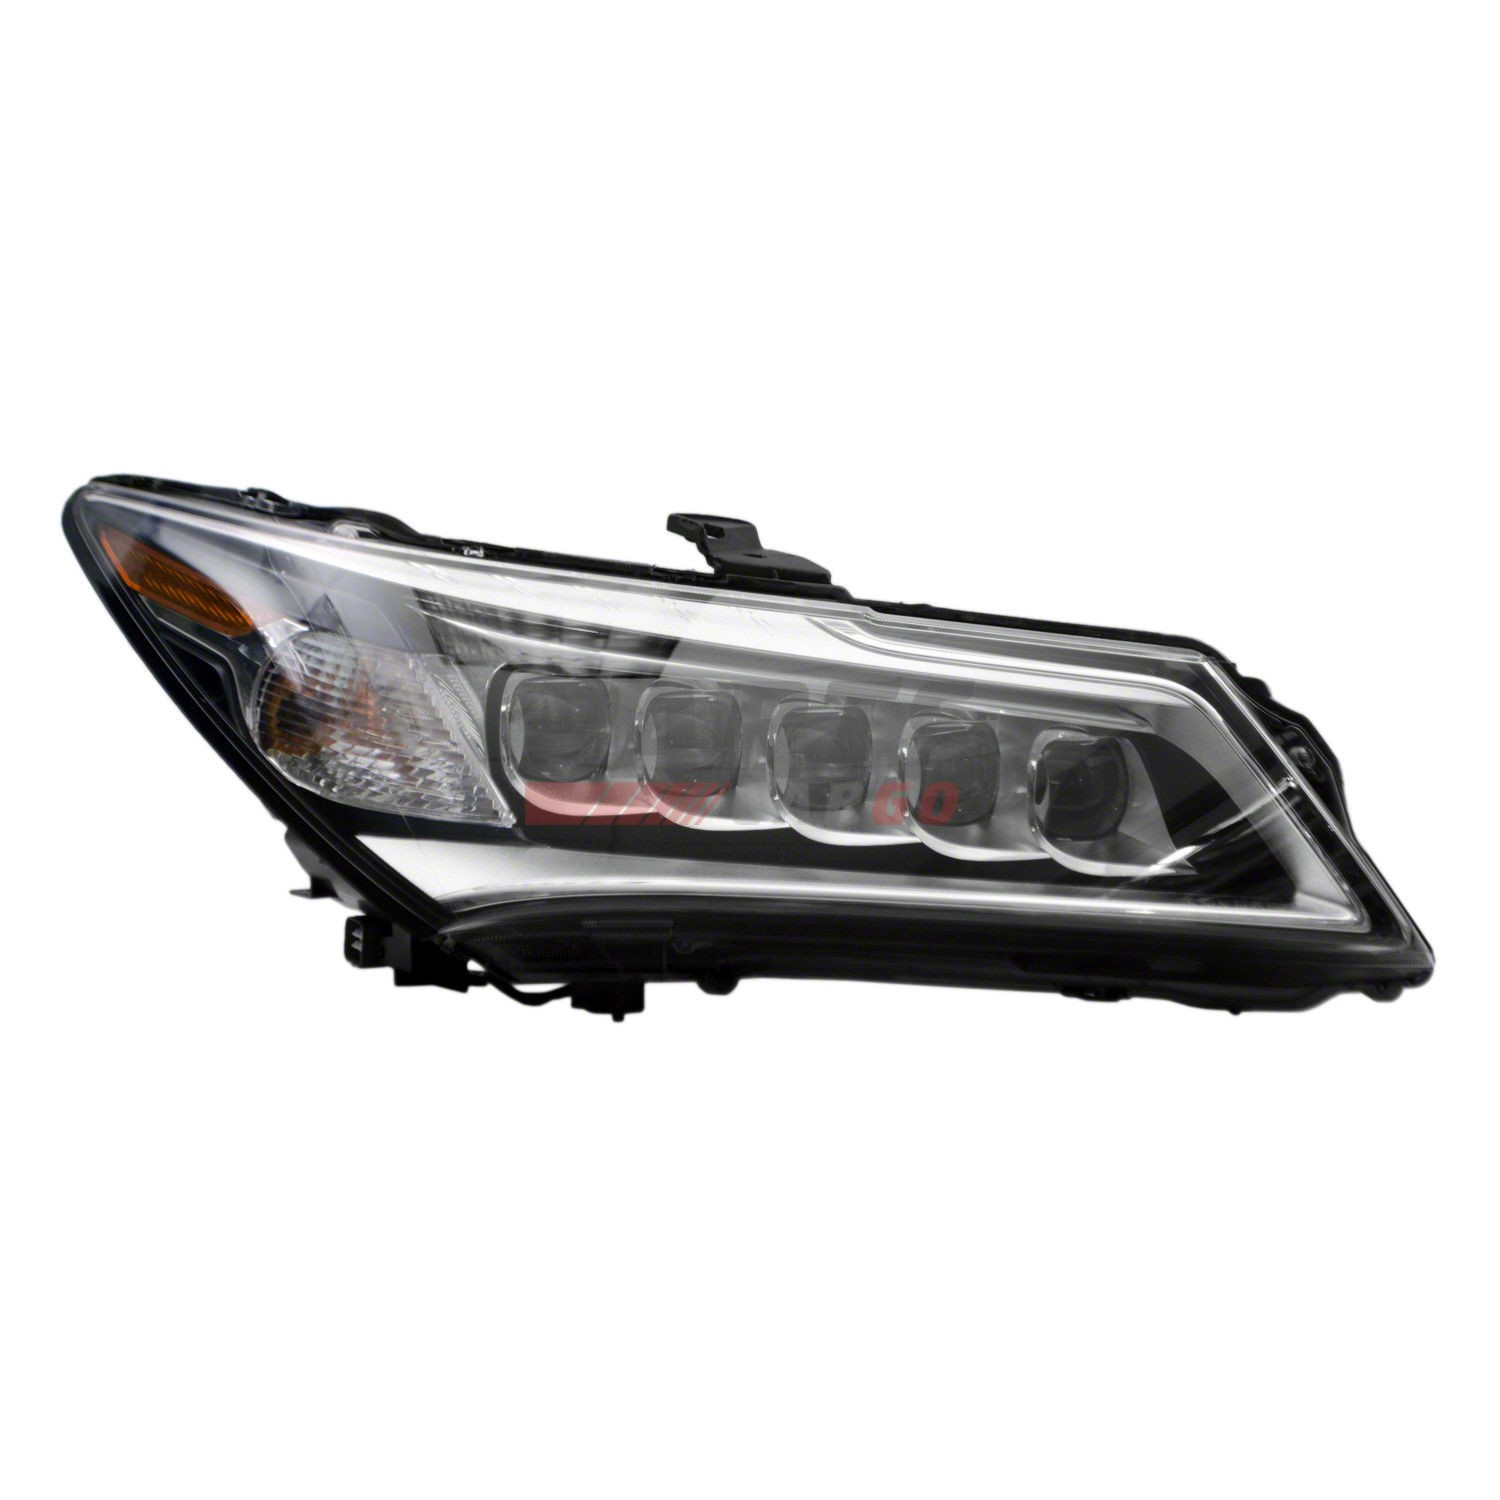 NEW LED HEADLIGHT ASSEMBLY RIGHT SIDE FITS 2014-2016 ACURA